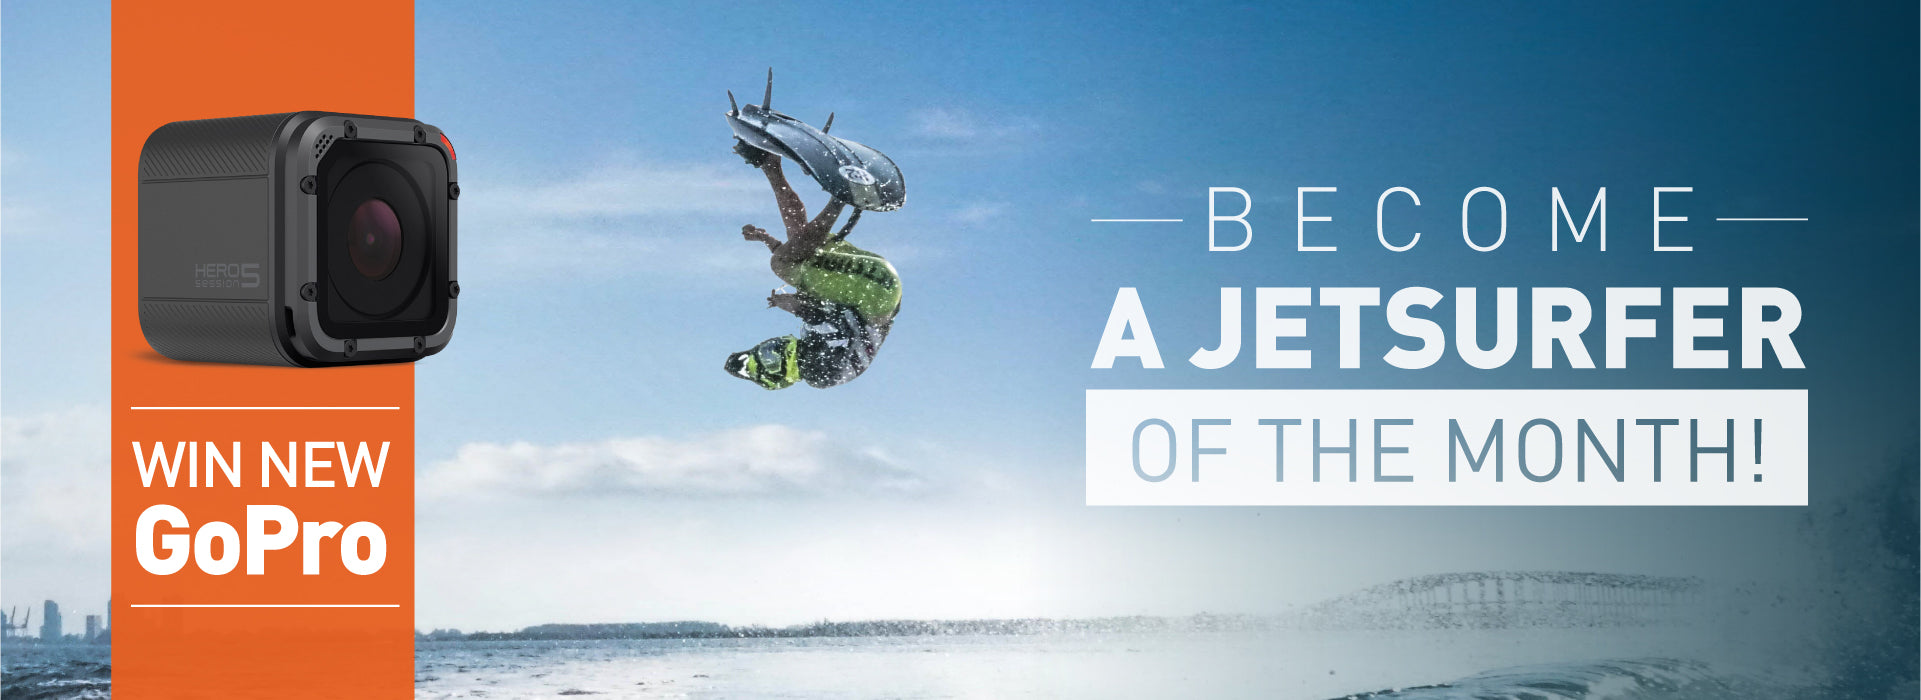 JetSurfer of the month